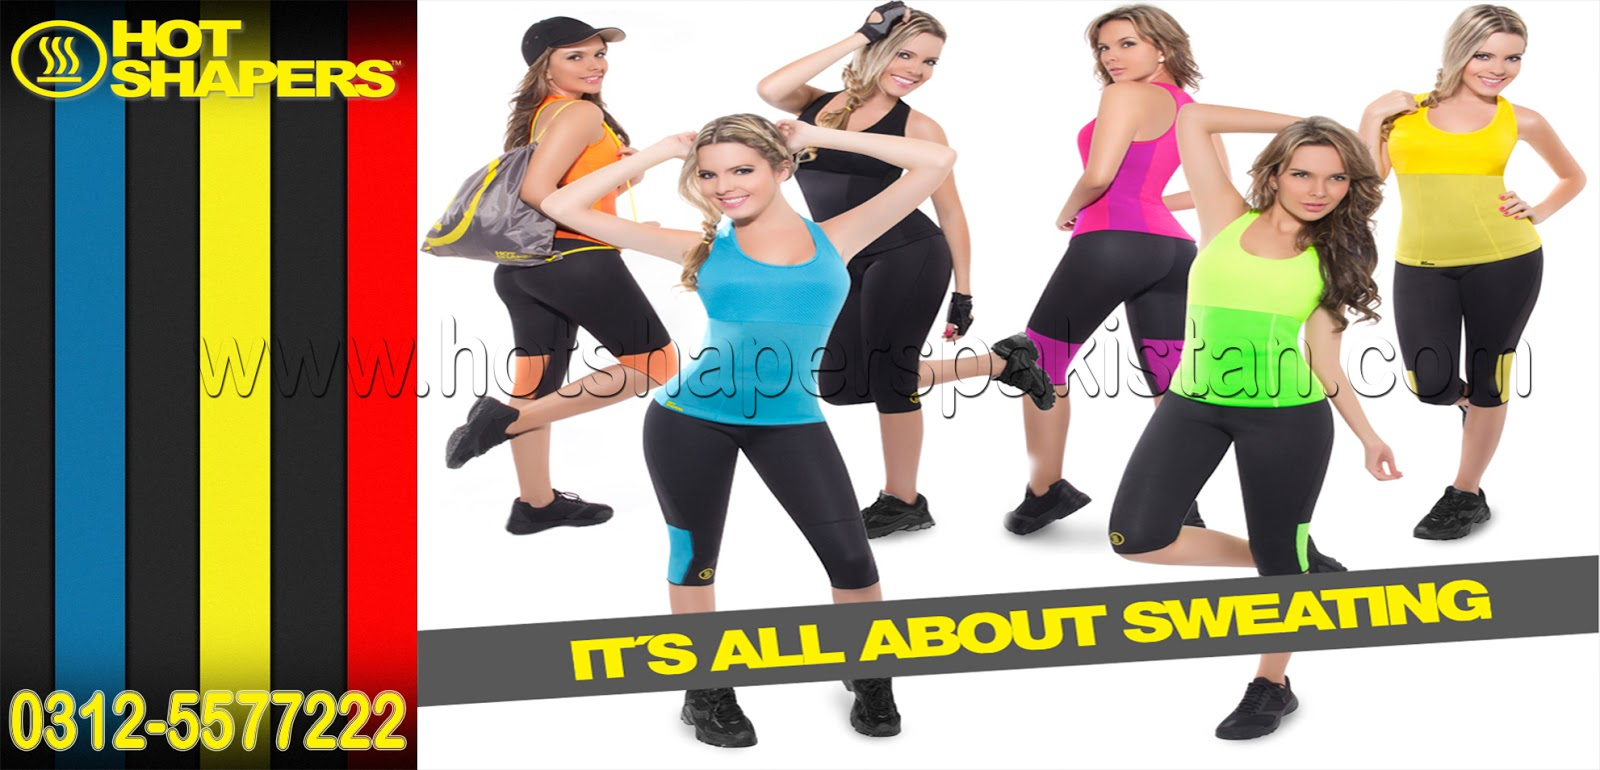 d7a3210b1b89c Sauna effect of hot shapers power knee pants helps in losing weight. It  works by generating a sensation of heat